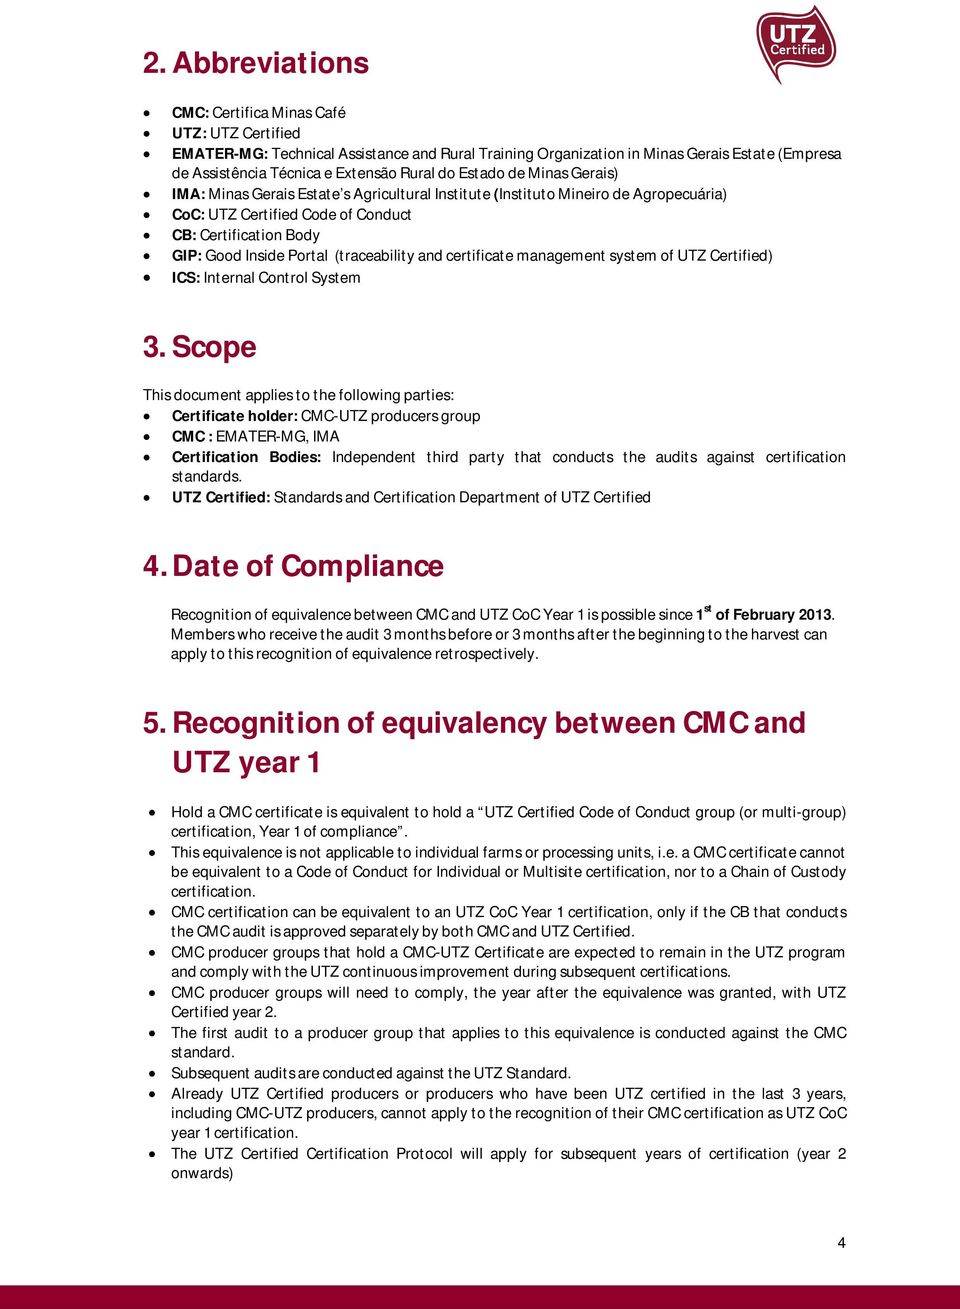 (traceability and certificate management system of UTZ Certified) ICS: Internal Control System 3.